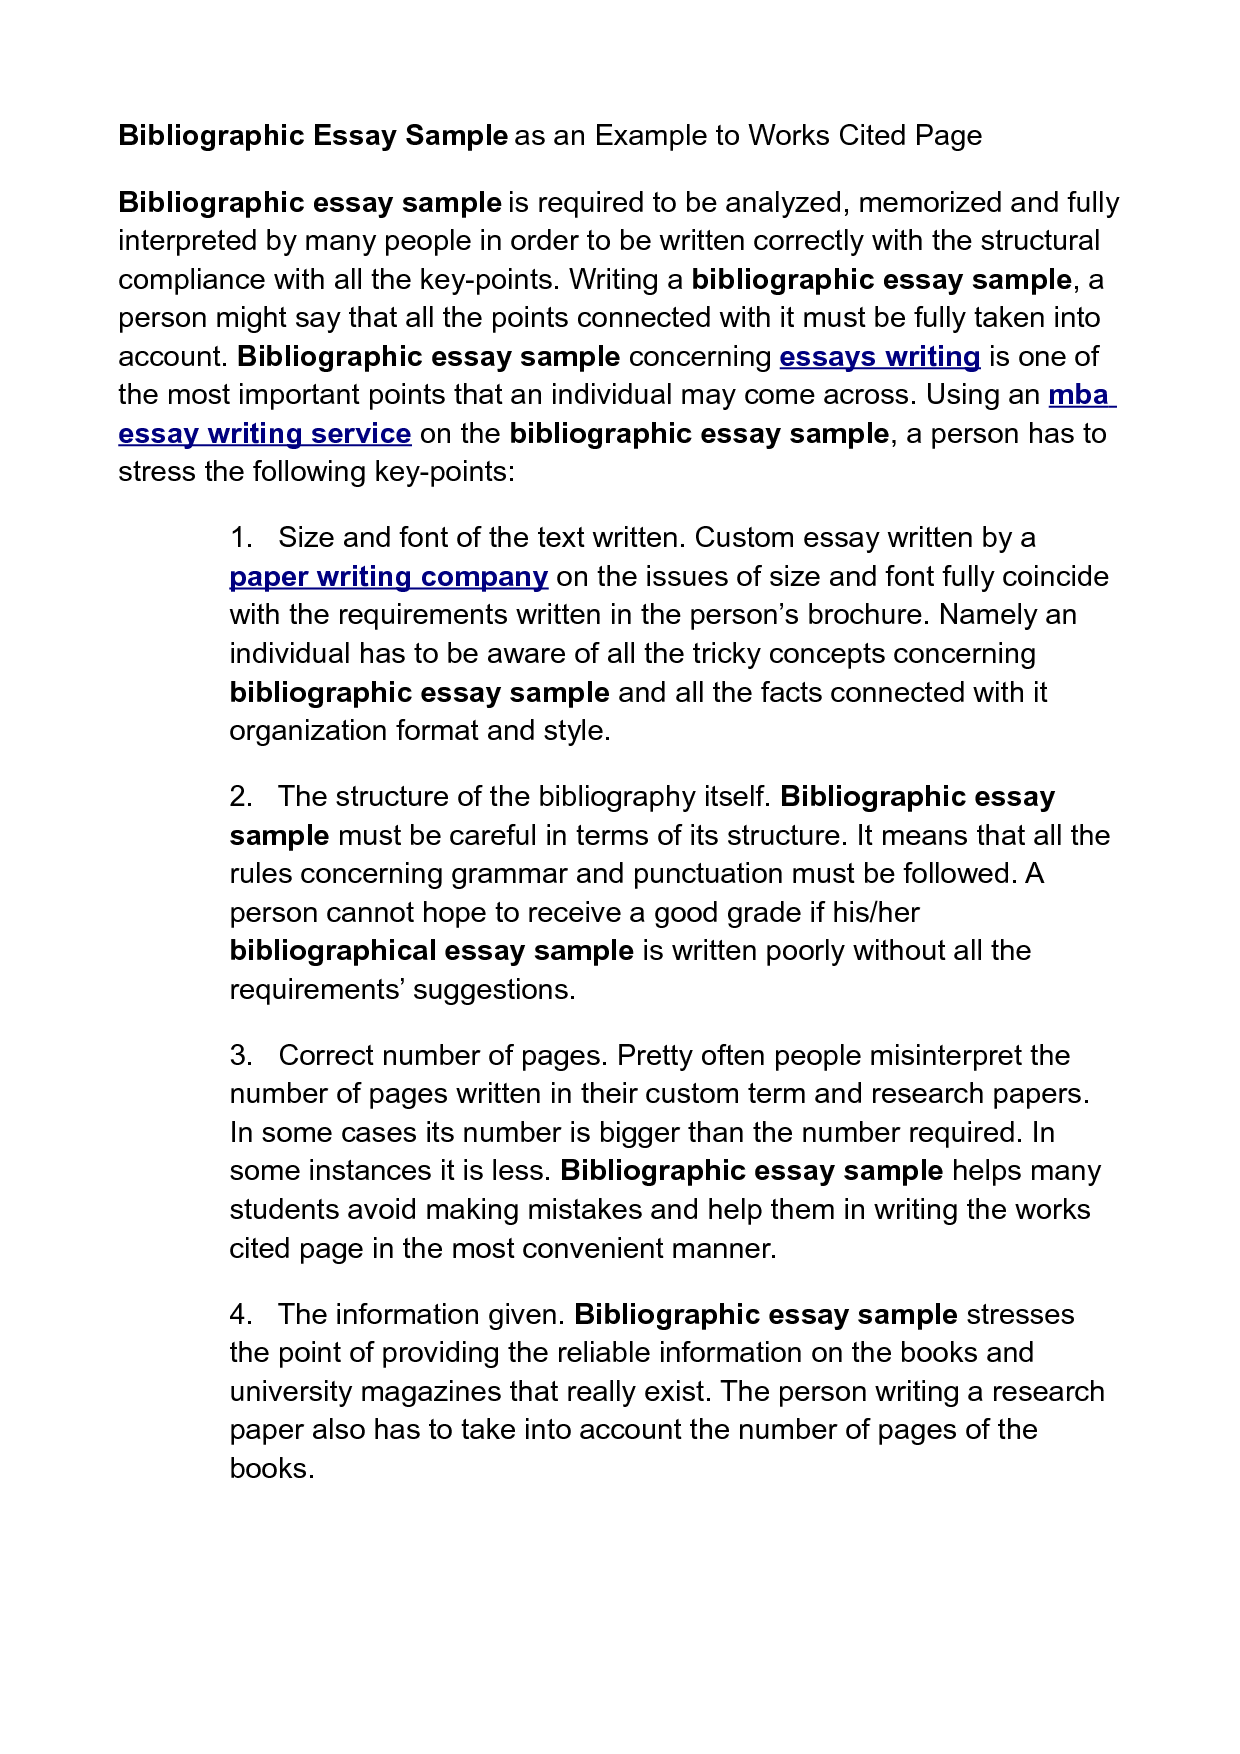 017 How To Cite In Essay Example Sample Persuasive With Works Cited Of Mla L Staggering Images Text Harvard Style Website Apa Full